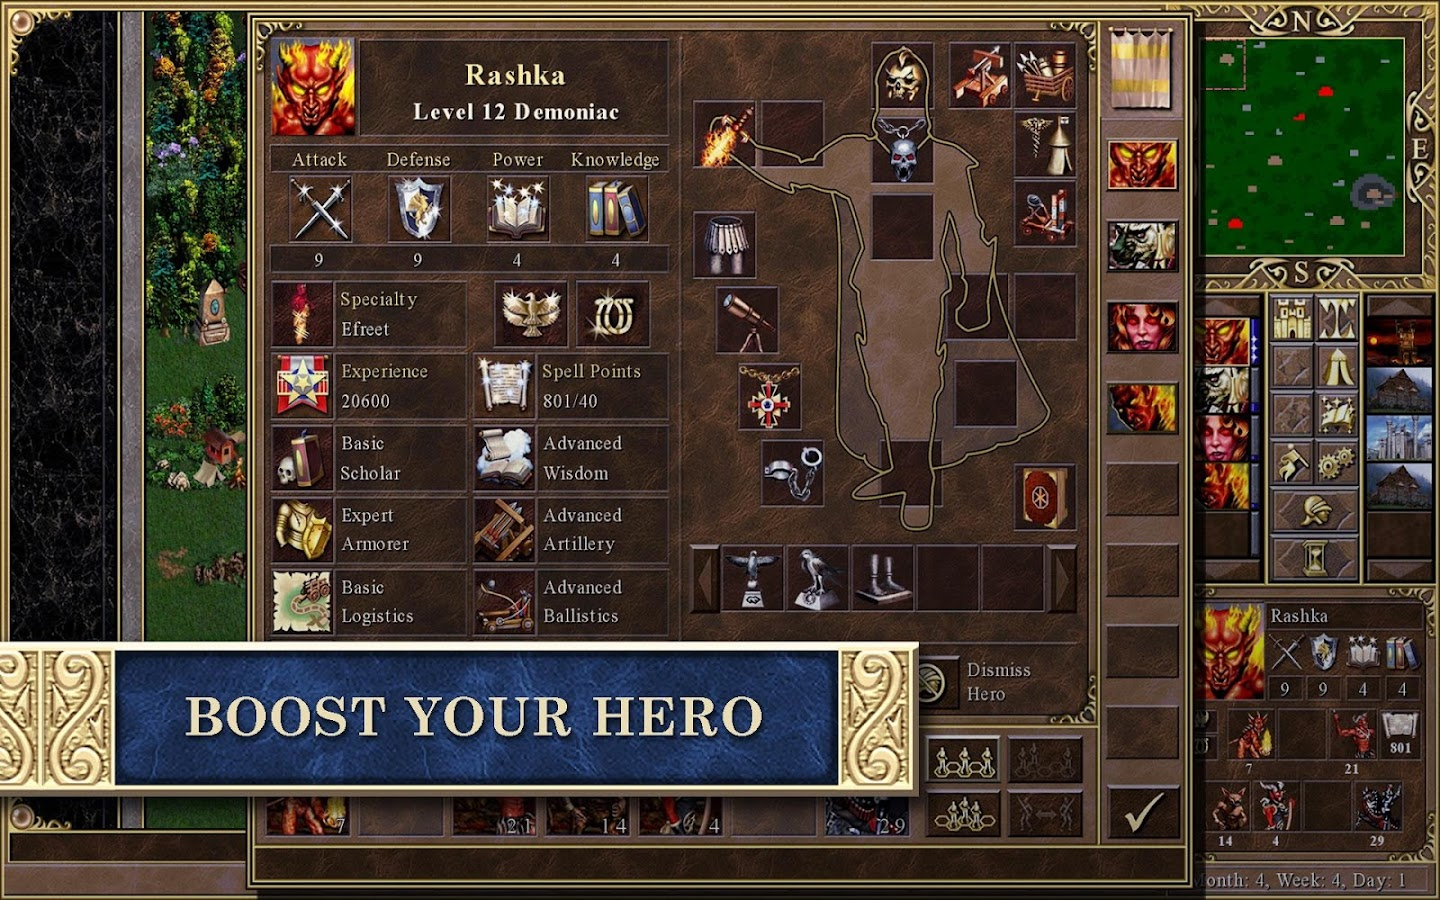 Heroes of Might & Magic III HD Screenshot 9